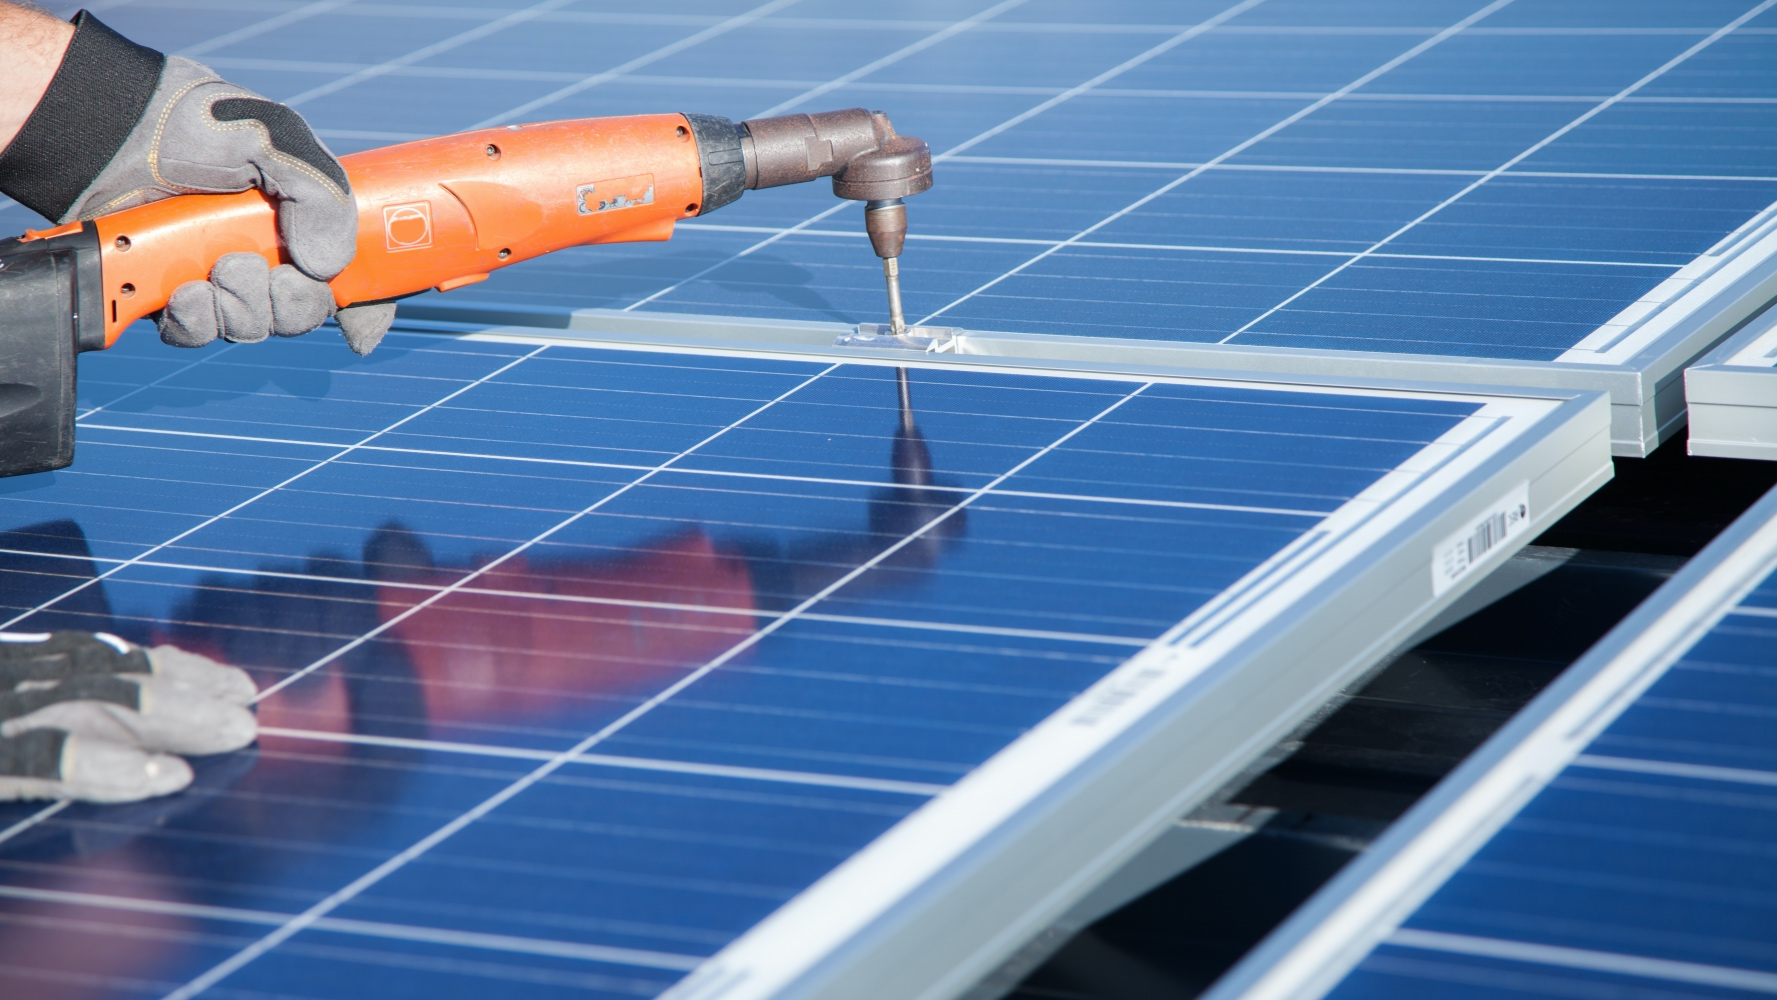 Elite Enterprise Group - Solar. Residential, commercial and agricultural solar systems. Installing solar systems can eliminate your energy bills. Request a free quote now.